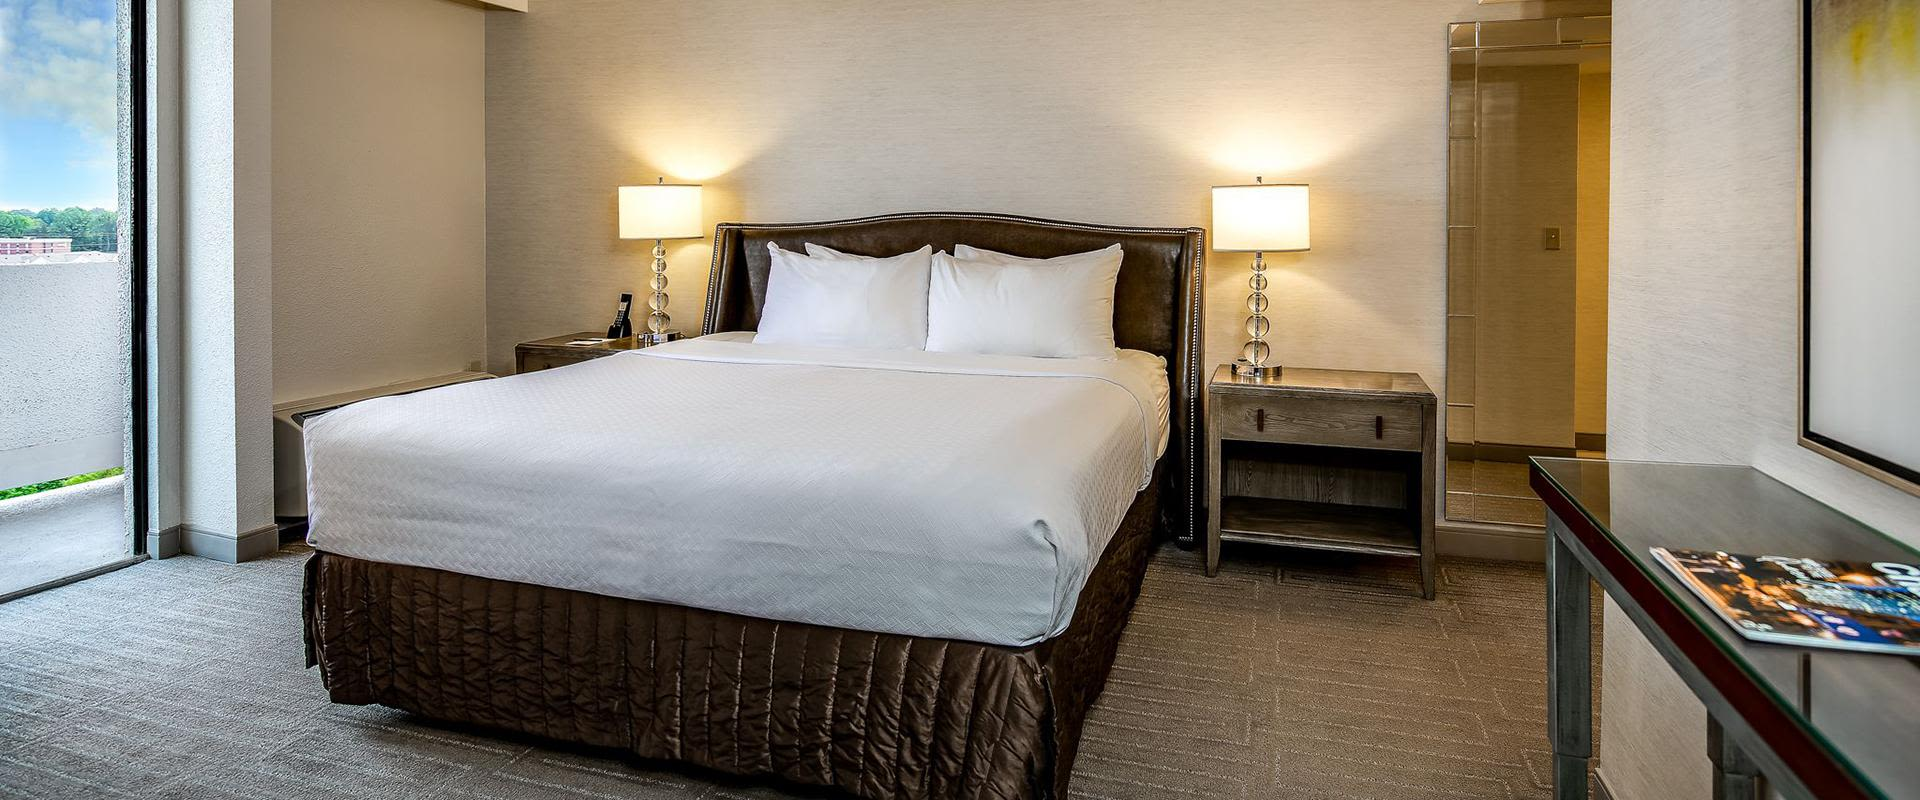 Charlotte Hotel King Bed Suite